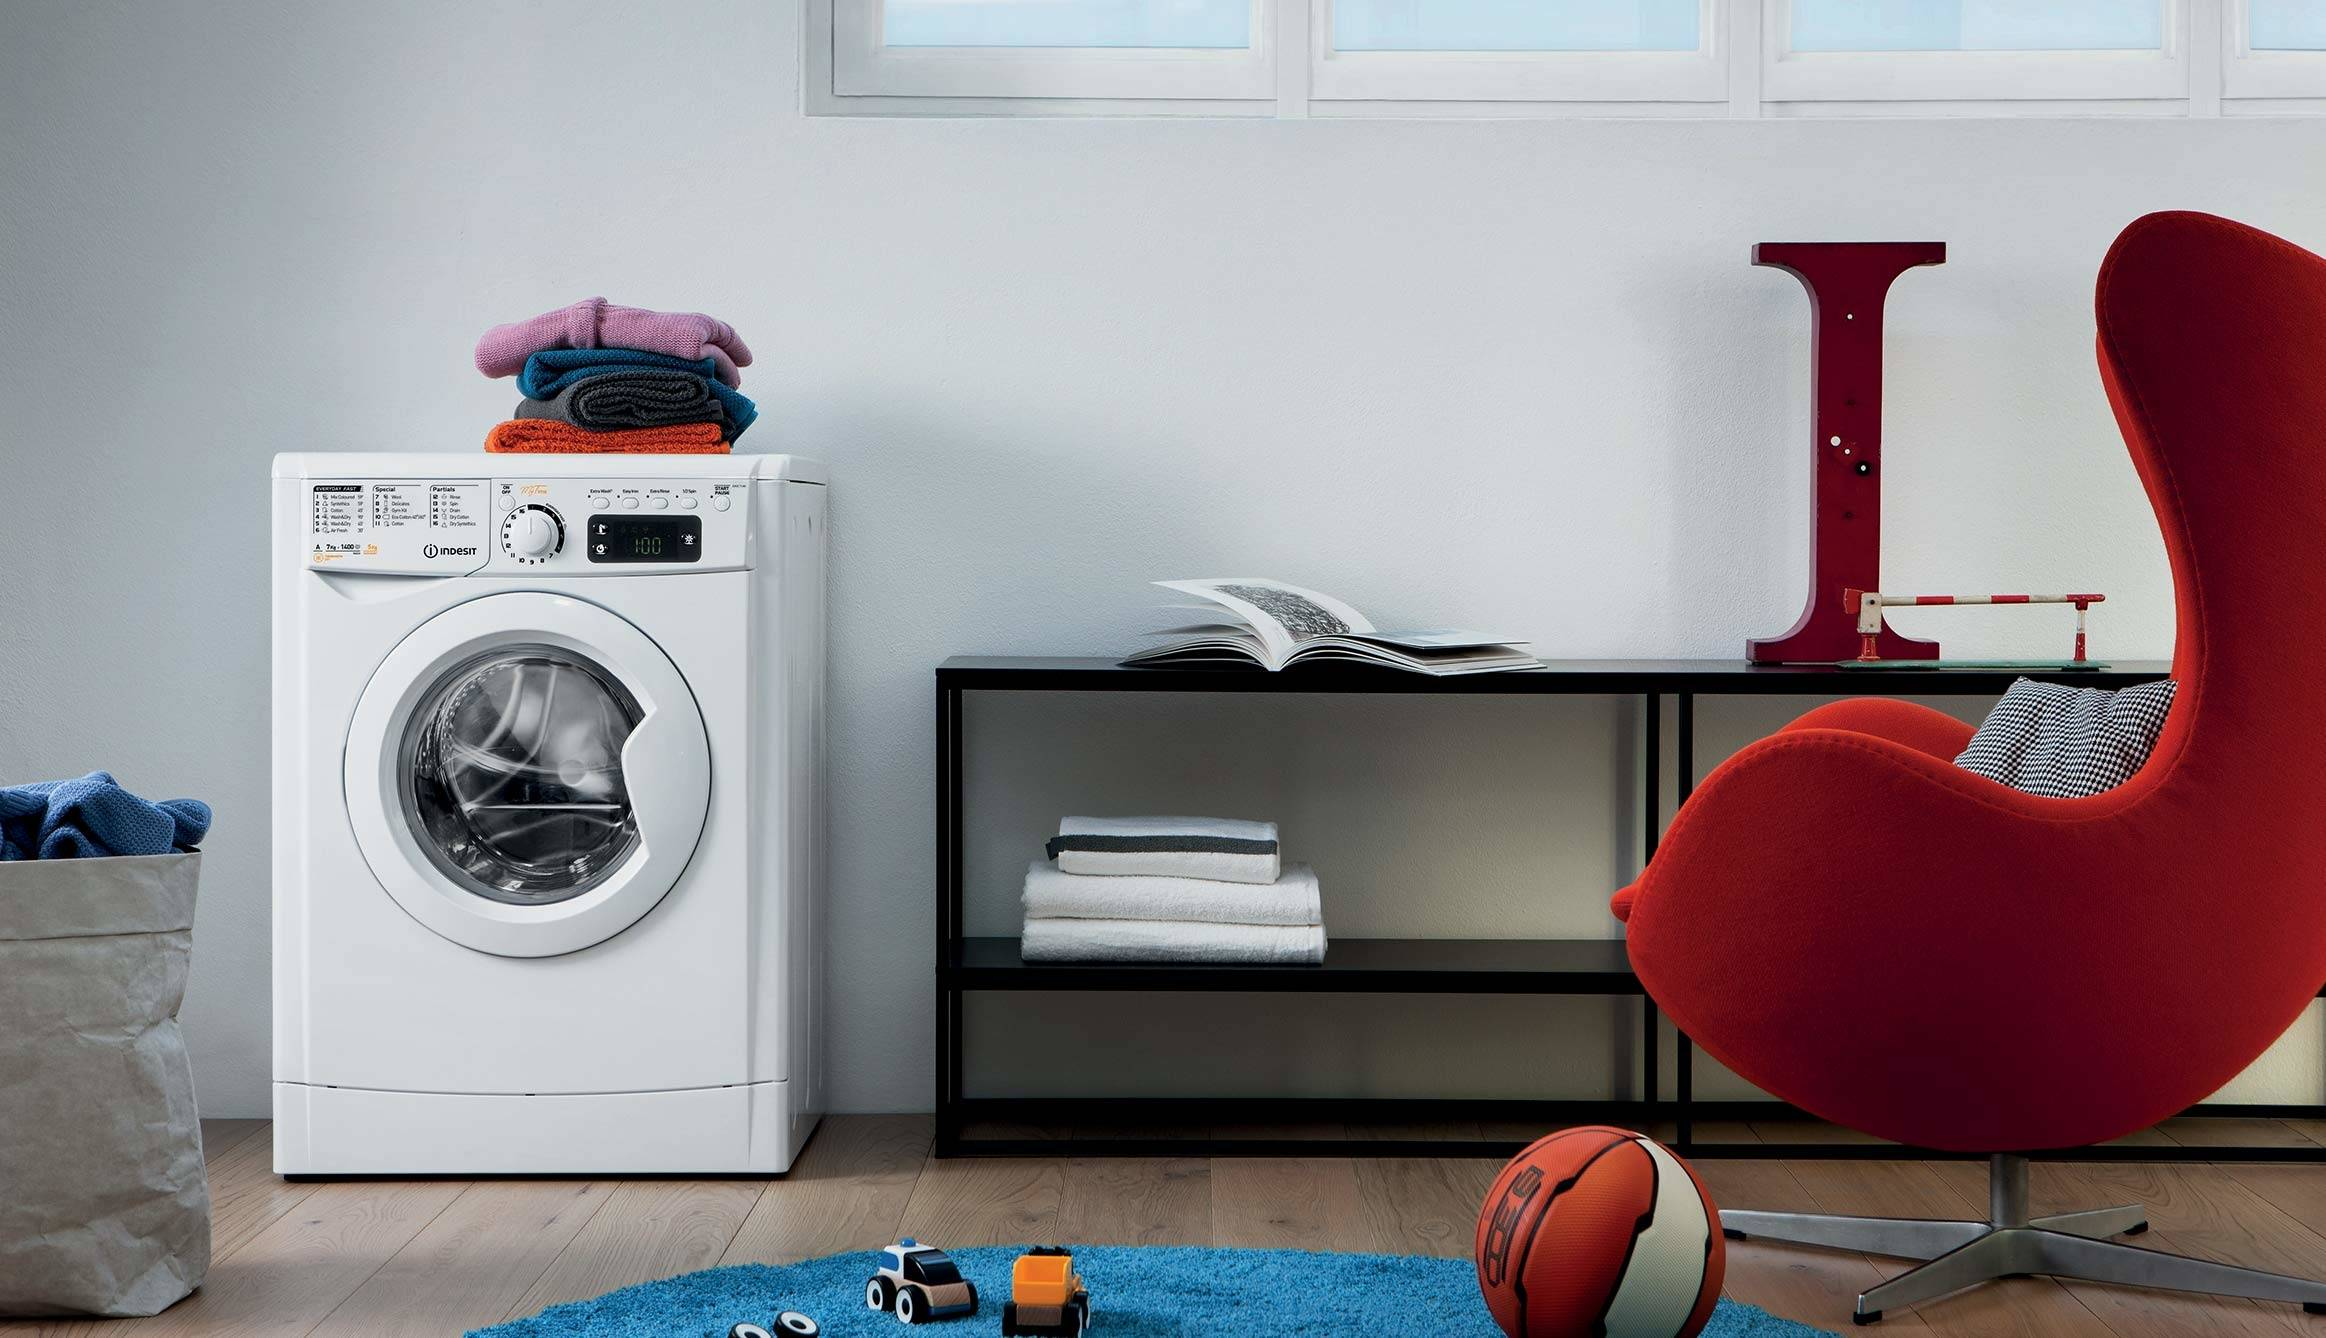 Indesit Innex Wasmachine Was-droogcombinatie: Energieklasse A+++ - My Time Indesit